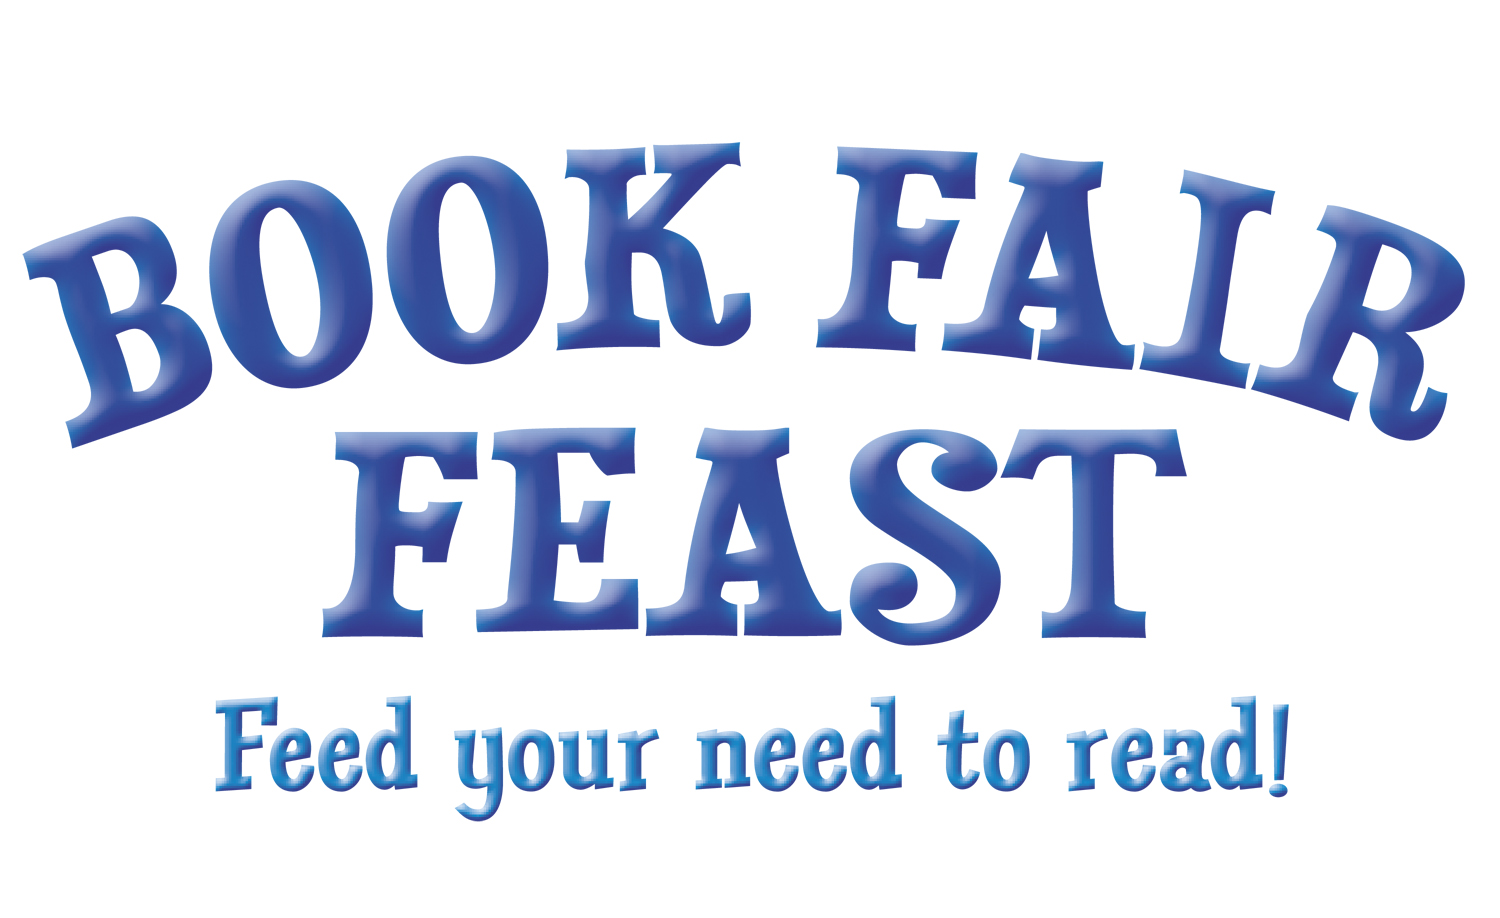 Free resources - Scholastic Book Fairs